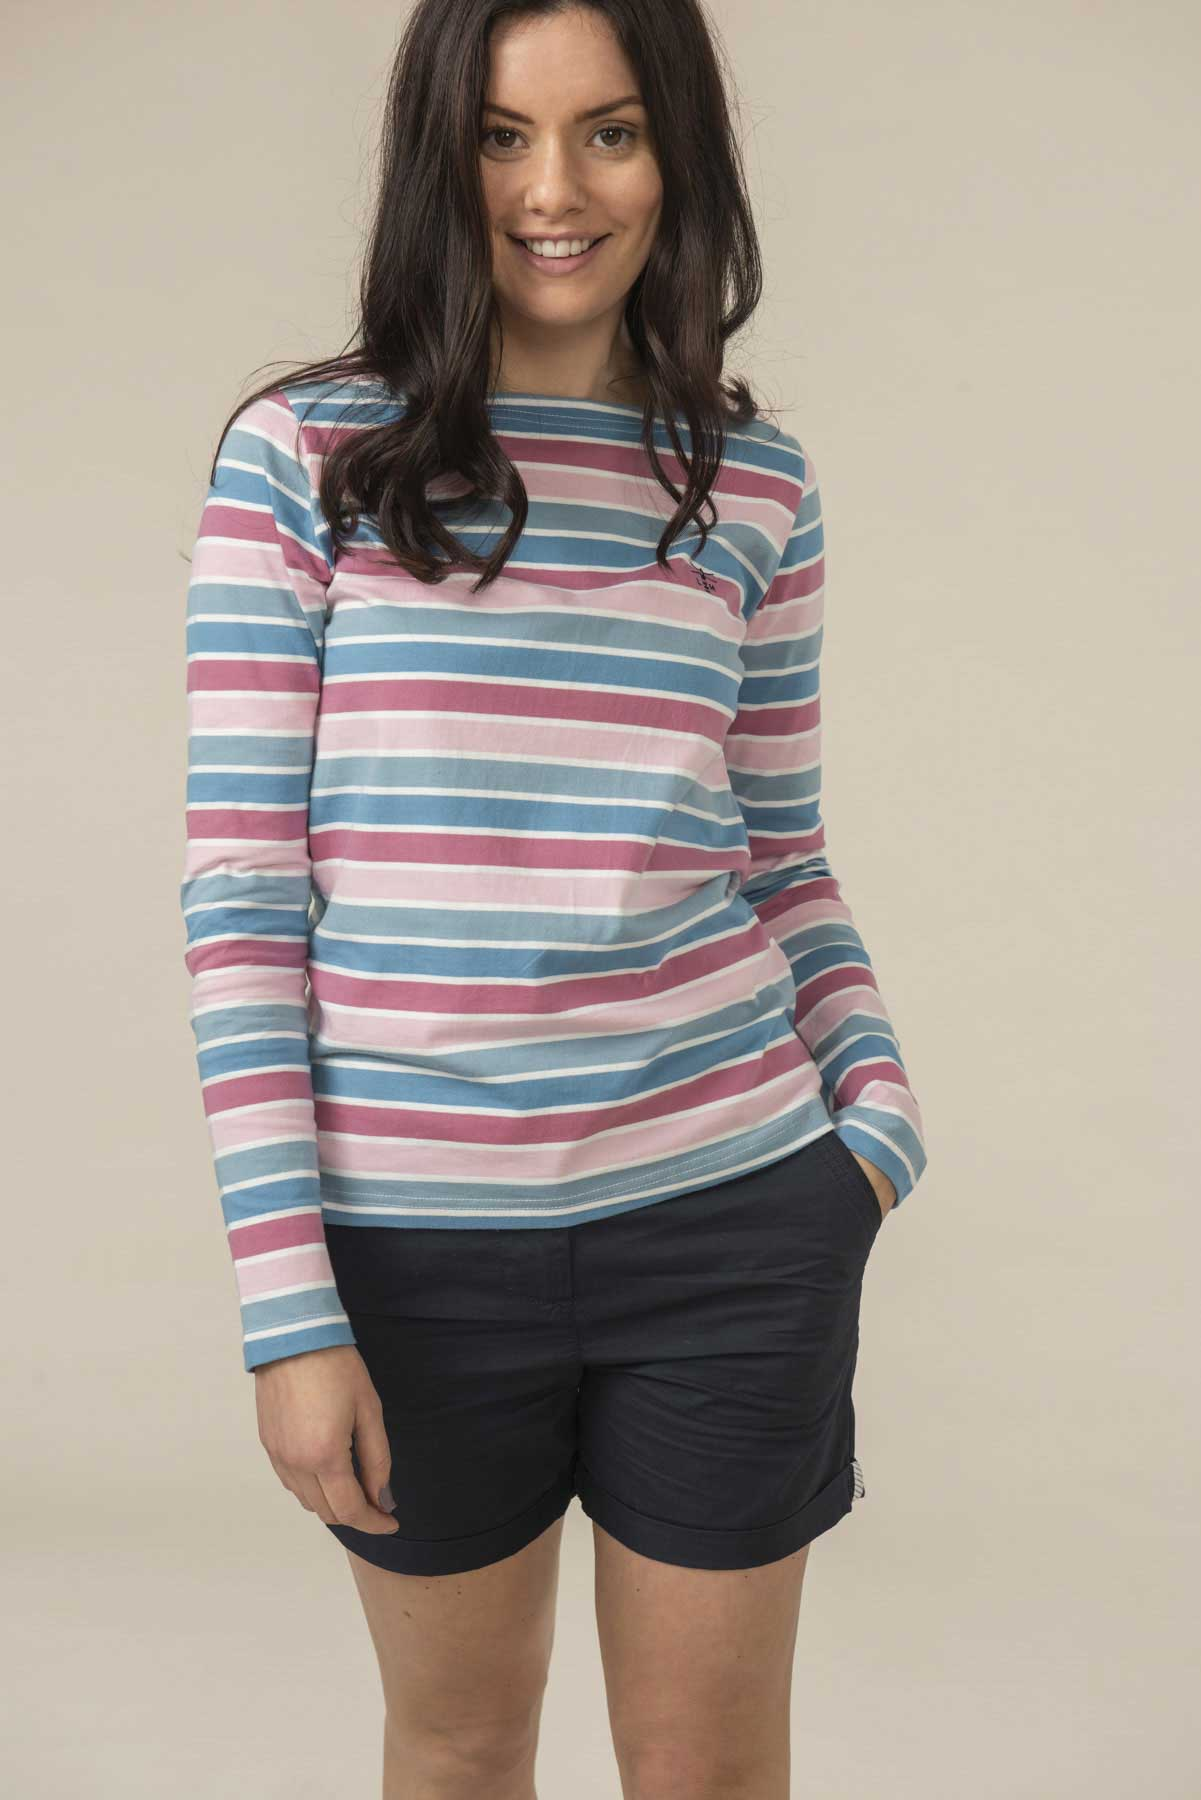 Women's Tops - Causeway - Pink Blue Striped Top